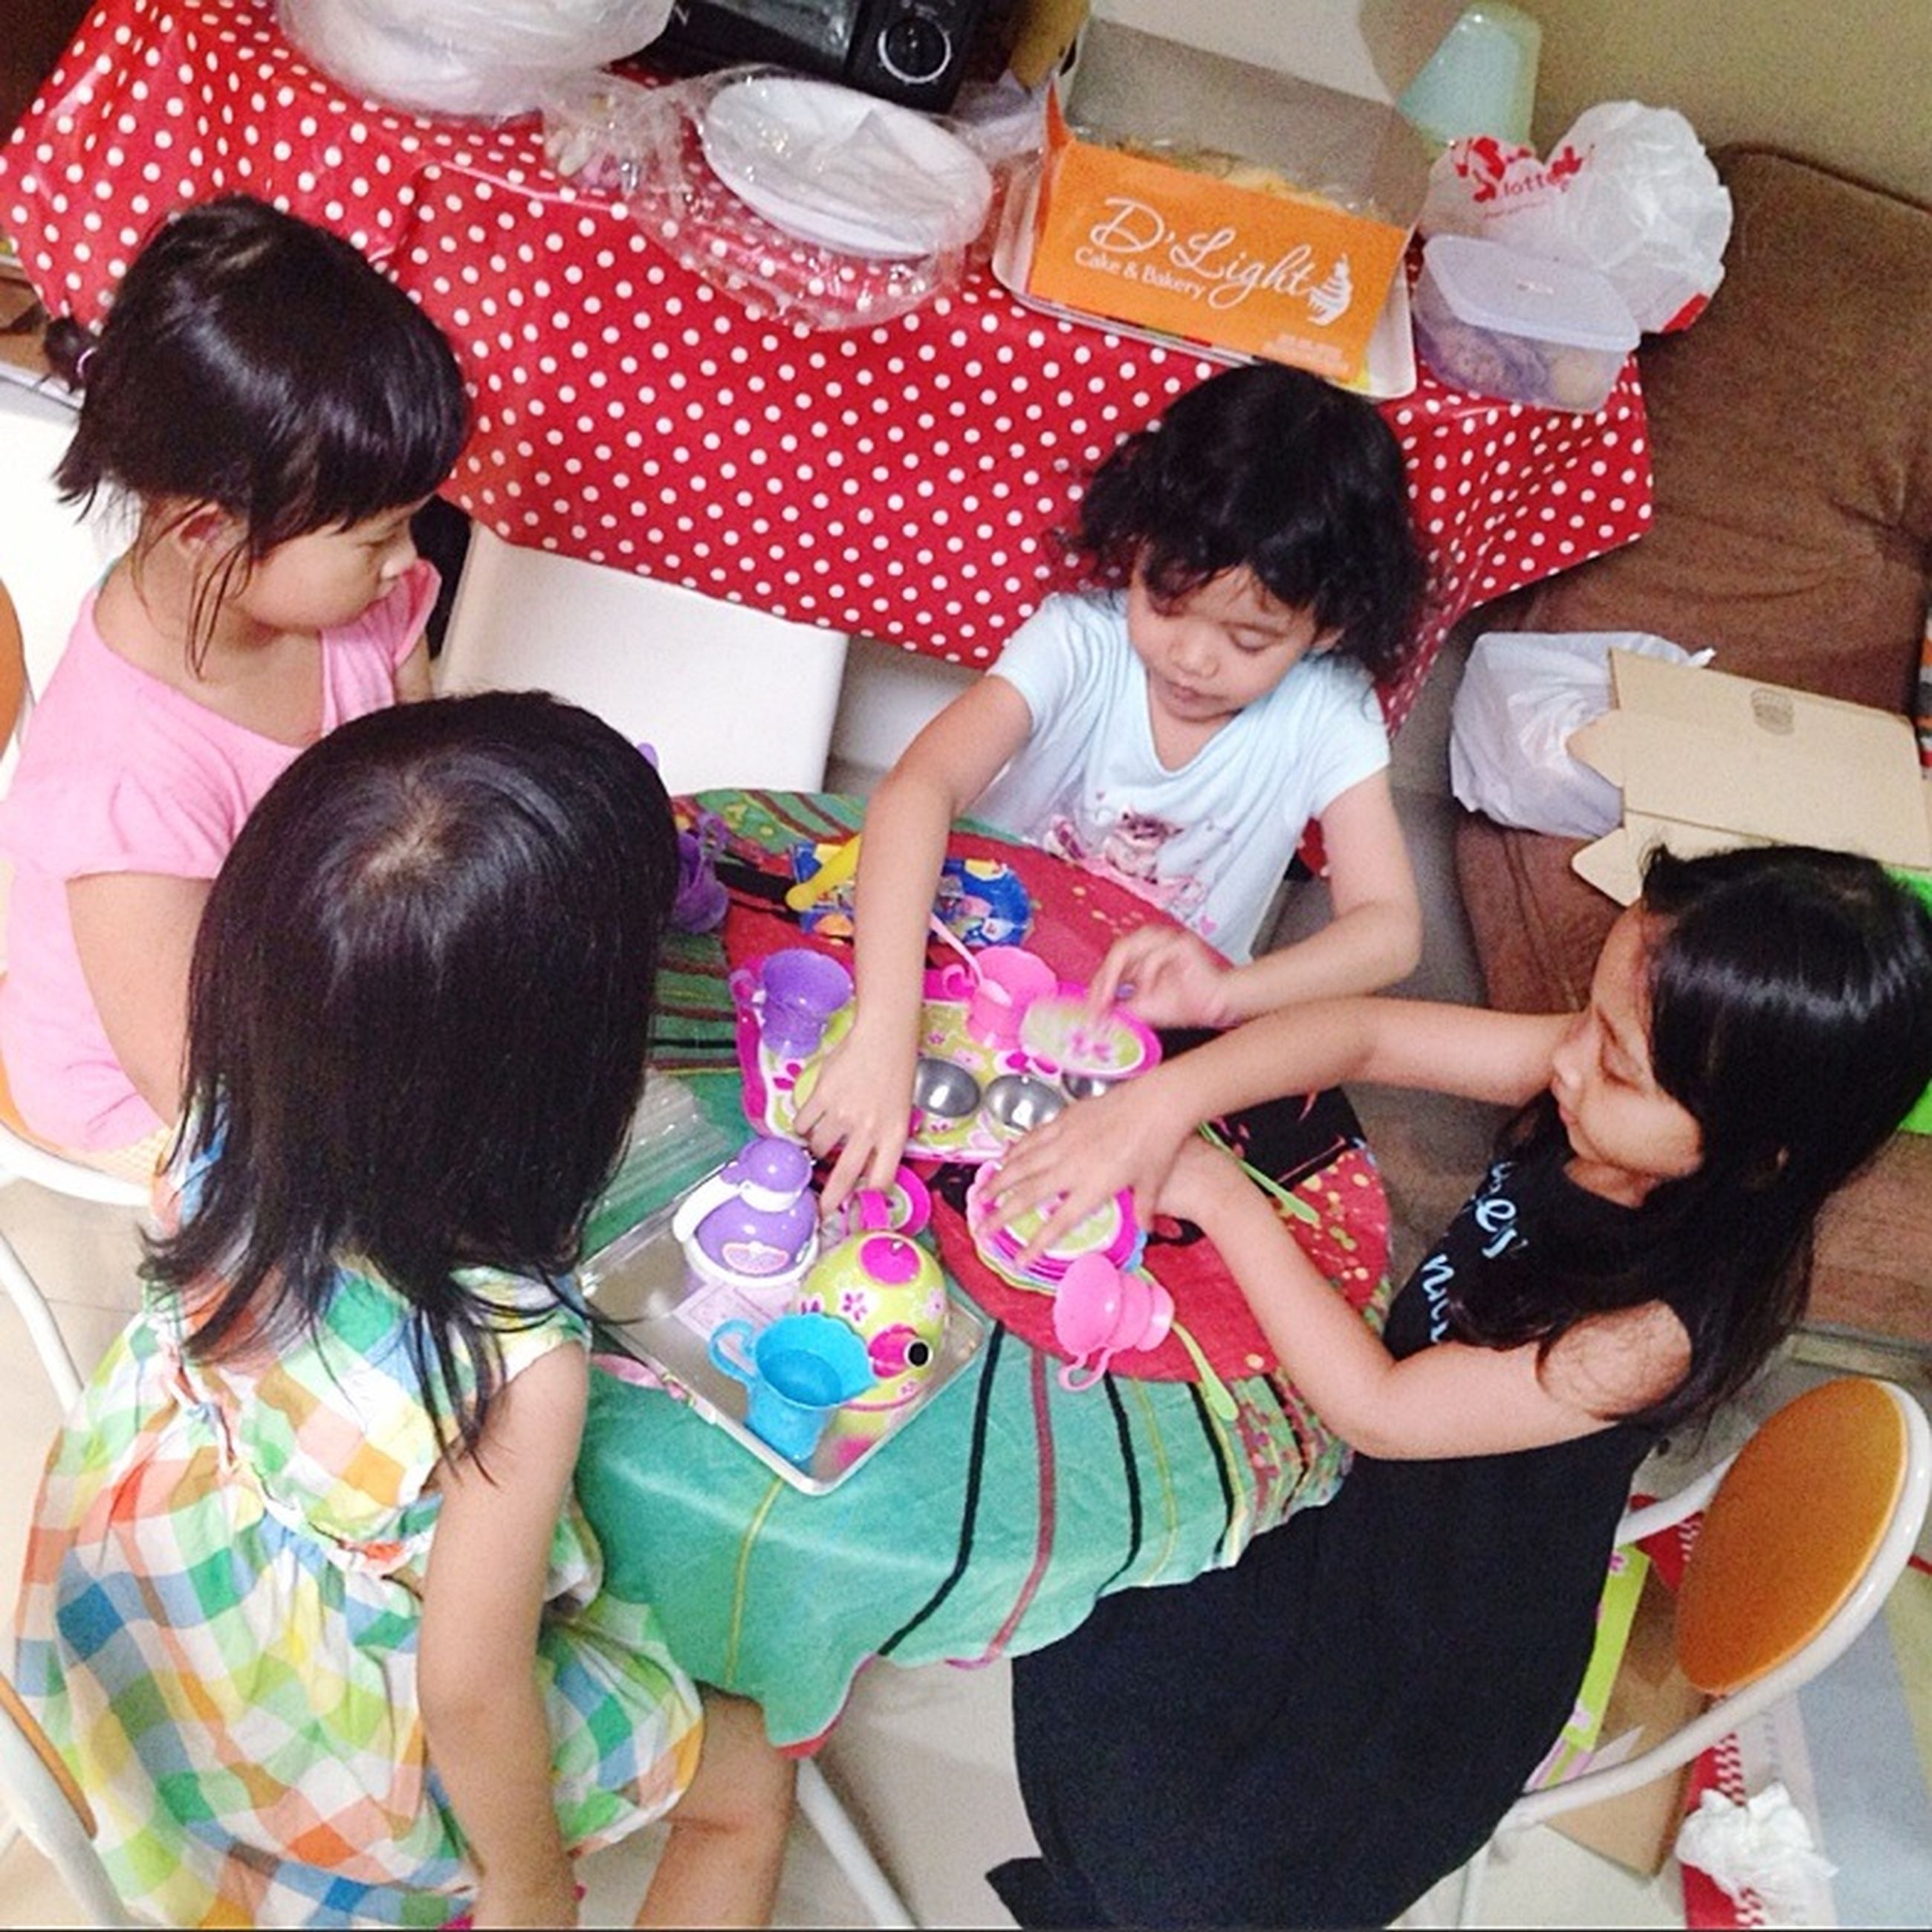 lifestyles, togetherness, childhood, leisure activity, bonding, casual clothing, people, elementary age, person, love, family, indoors, friendship, holding, sibling, enjoyment